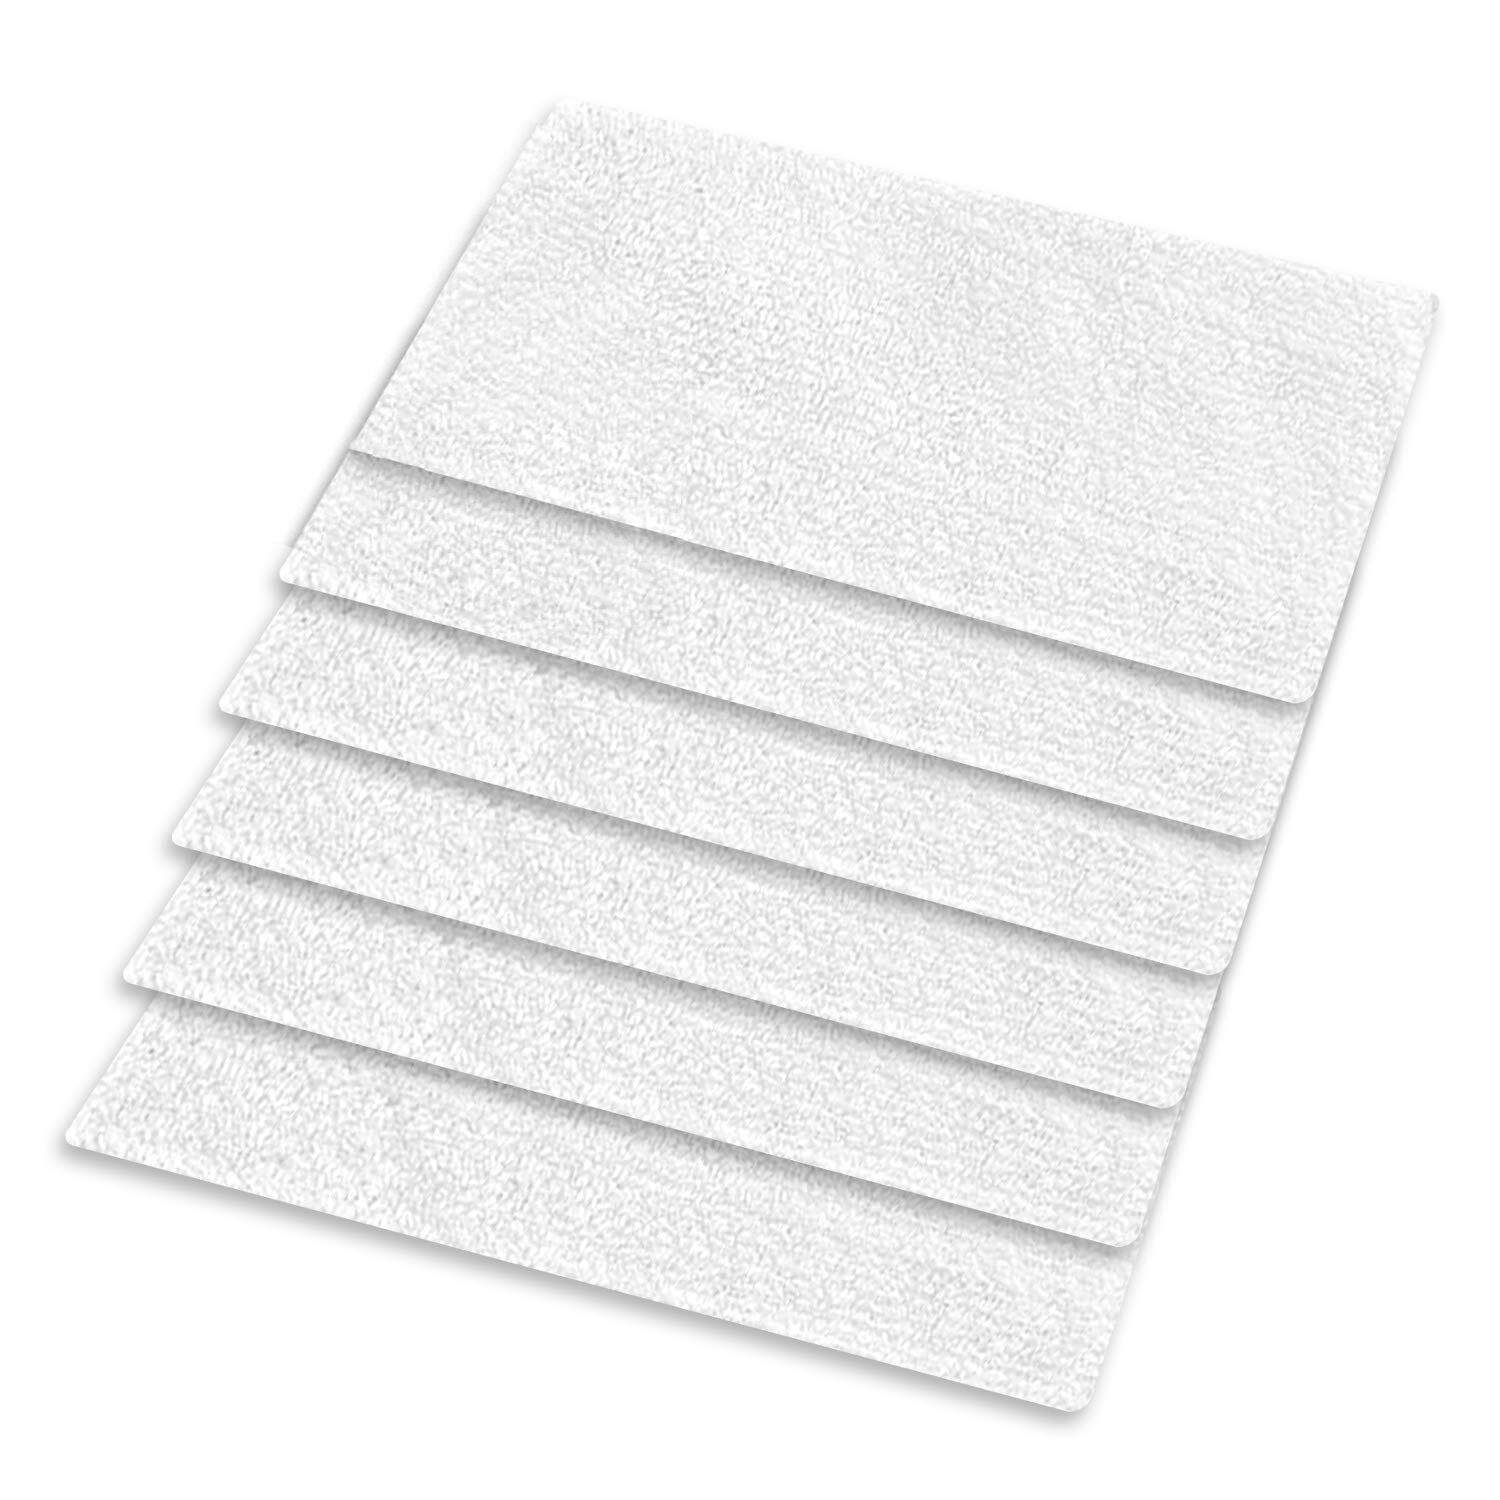 6Packs Washable 3 Layers Microfiber, Replacement Steam Mop Pads For Most Hard Flooring Surface For Light N Easy S3101/S7326